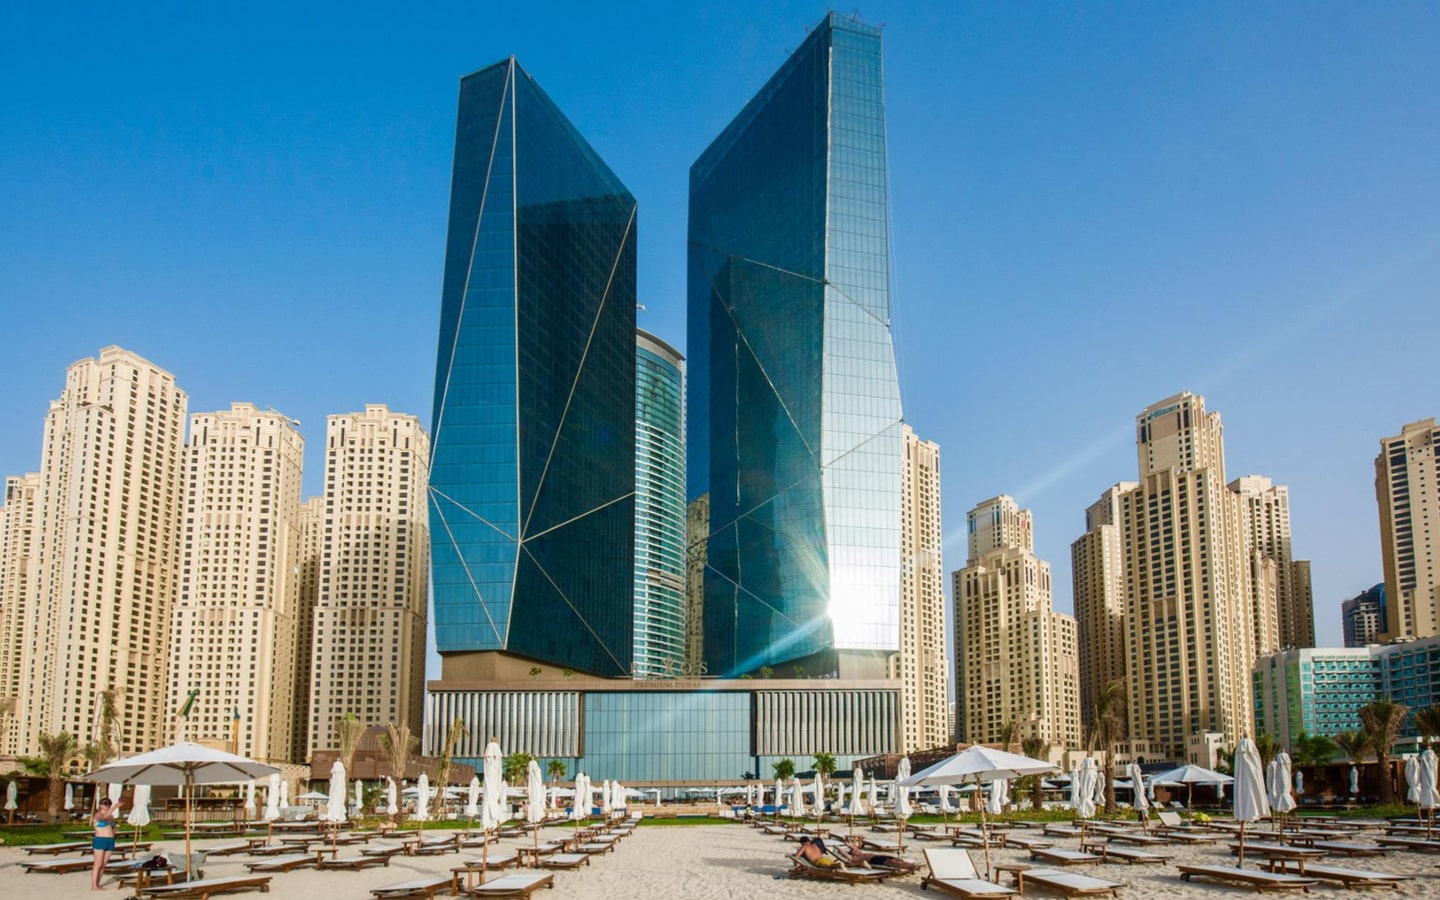 Exterior view of Rixos Premium JBR, which has Dubai hotel deals for New Year's